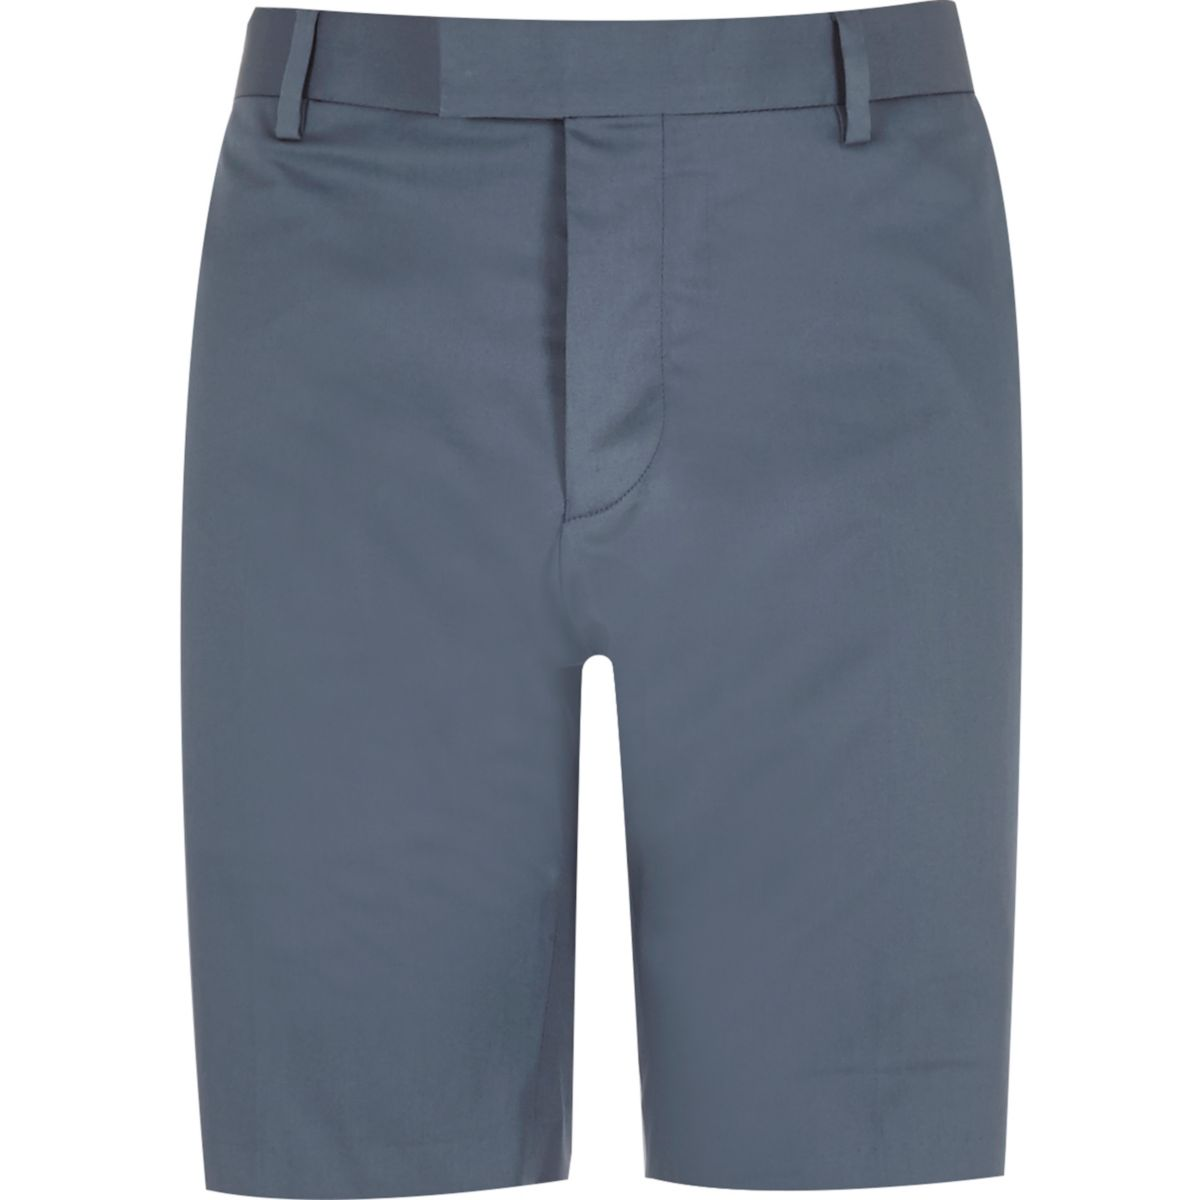 Blue tailored fit bermuda shorts